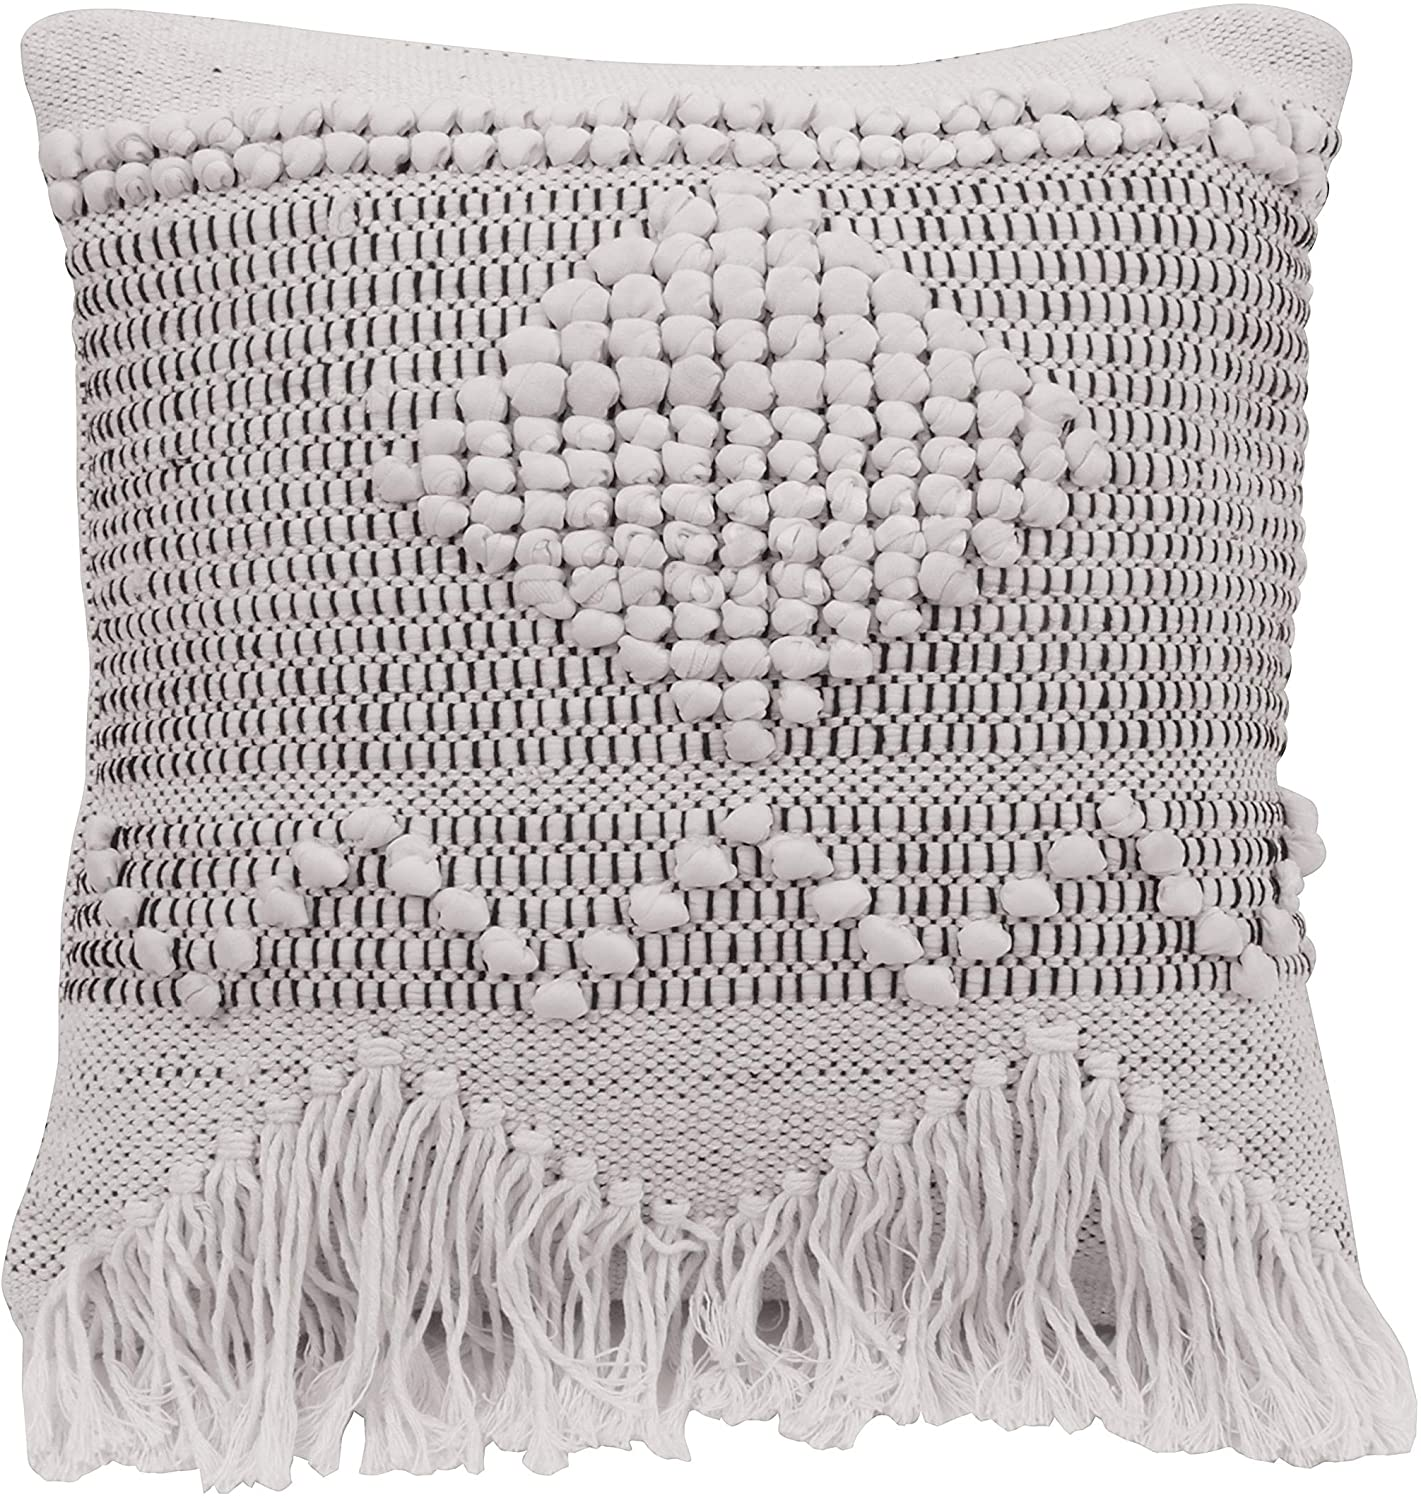 MISC Ivory Grey Square Textured Cotton Pillow Bohemian Eclectic Removable Cover